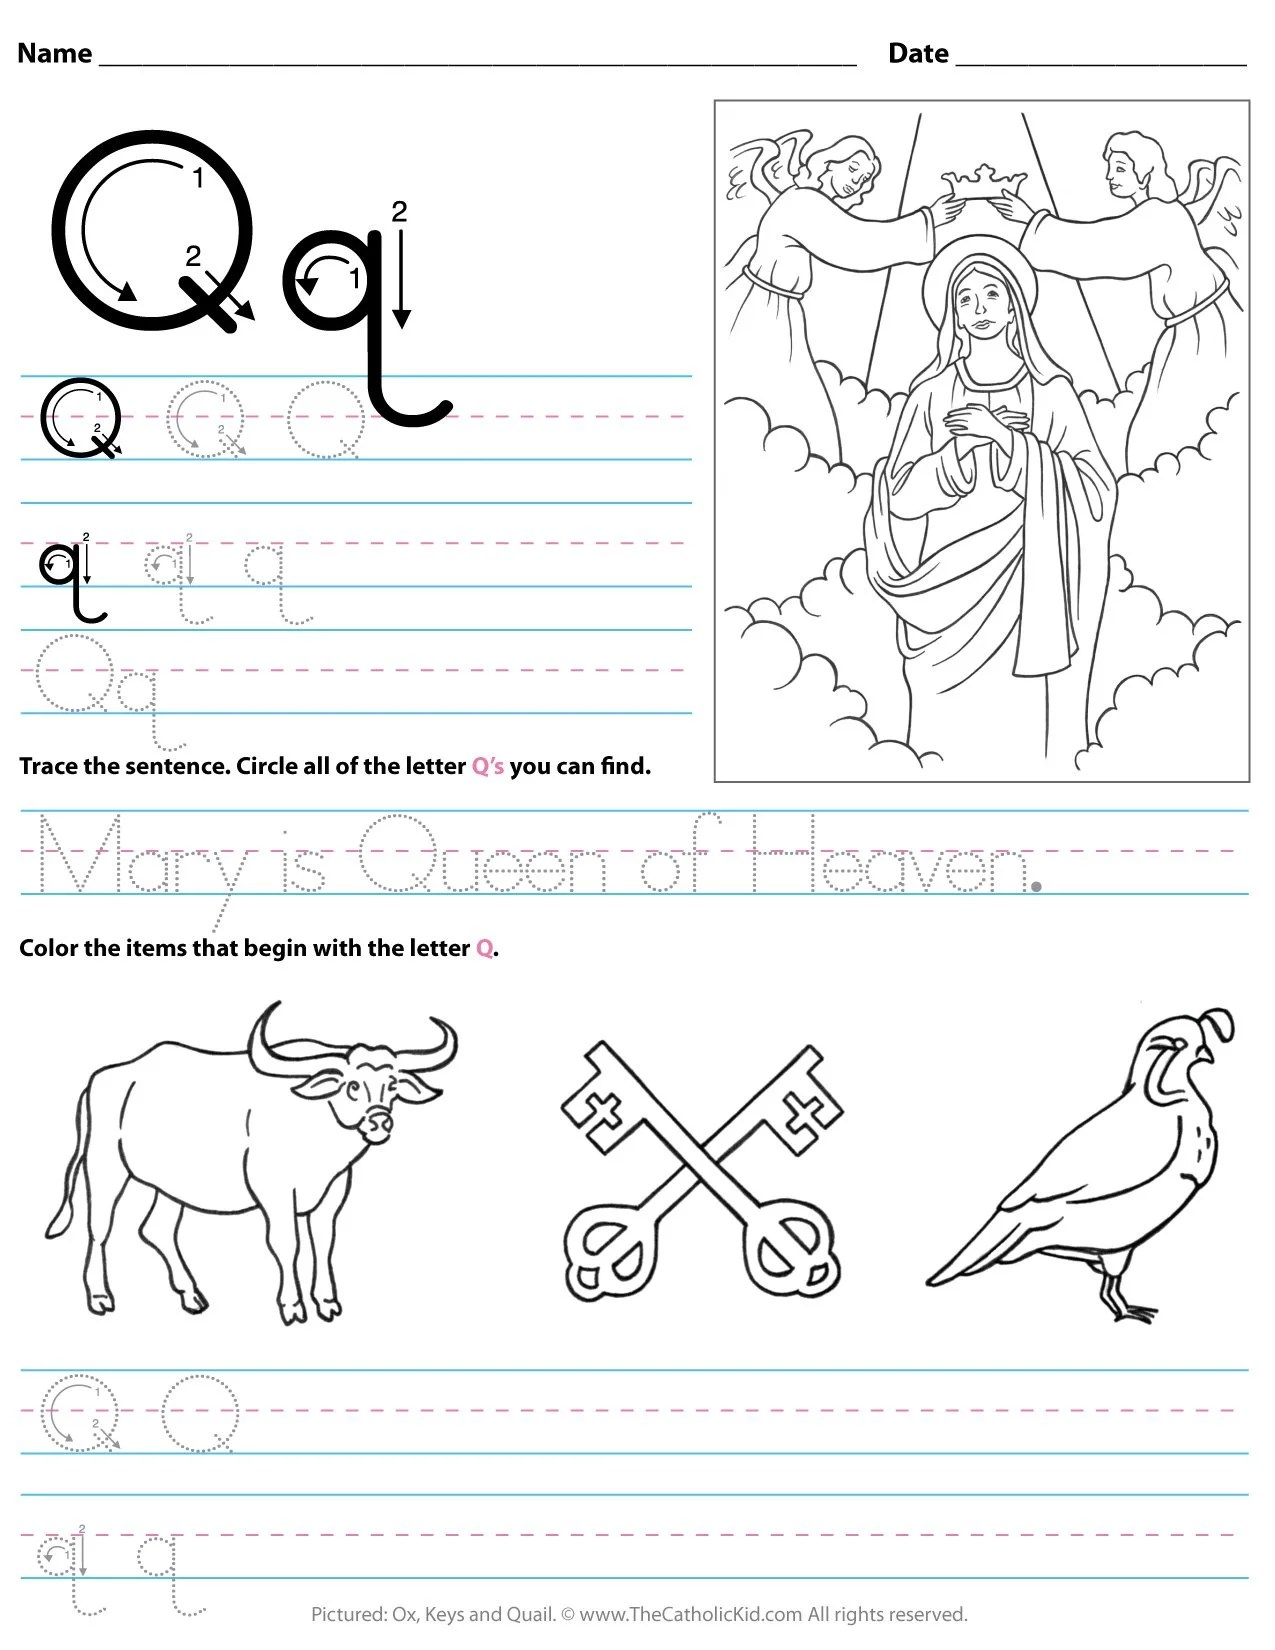 Preschool Worksheet Gallery Tracing Letter Q Worksheets